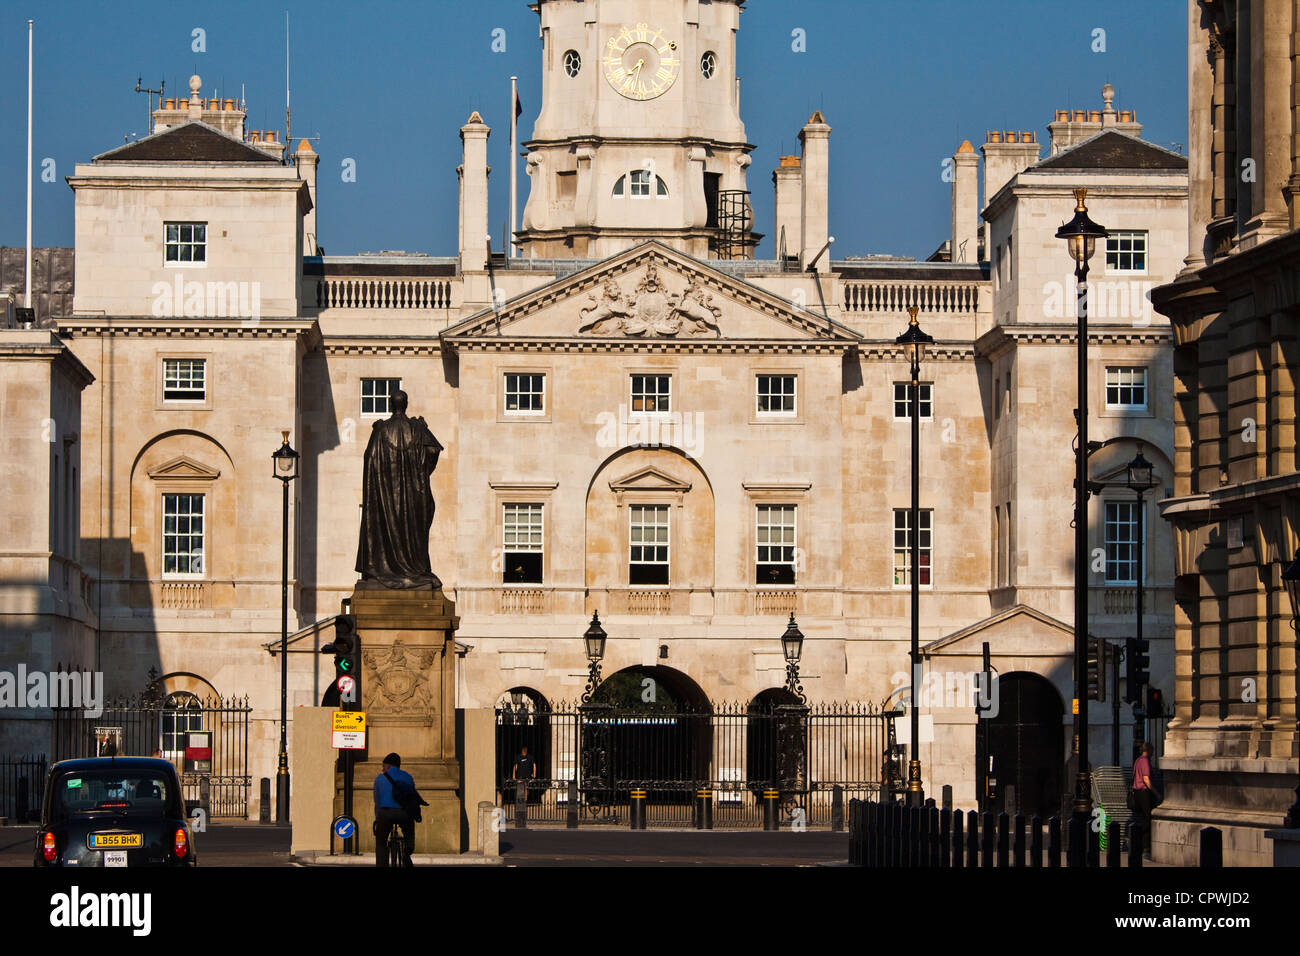 Horseguards - Stock Image